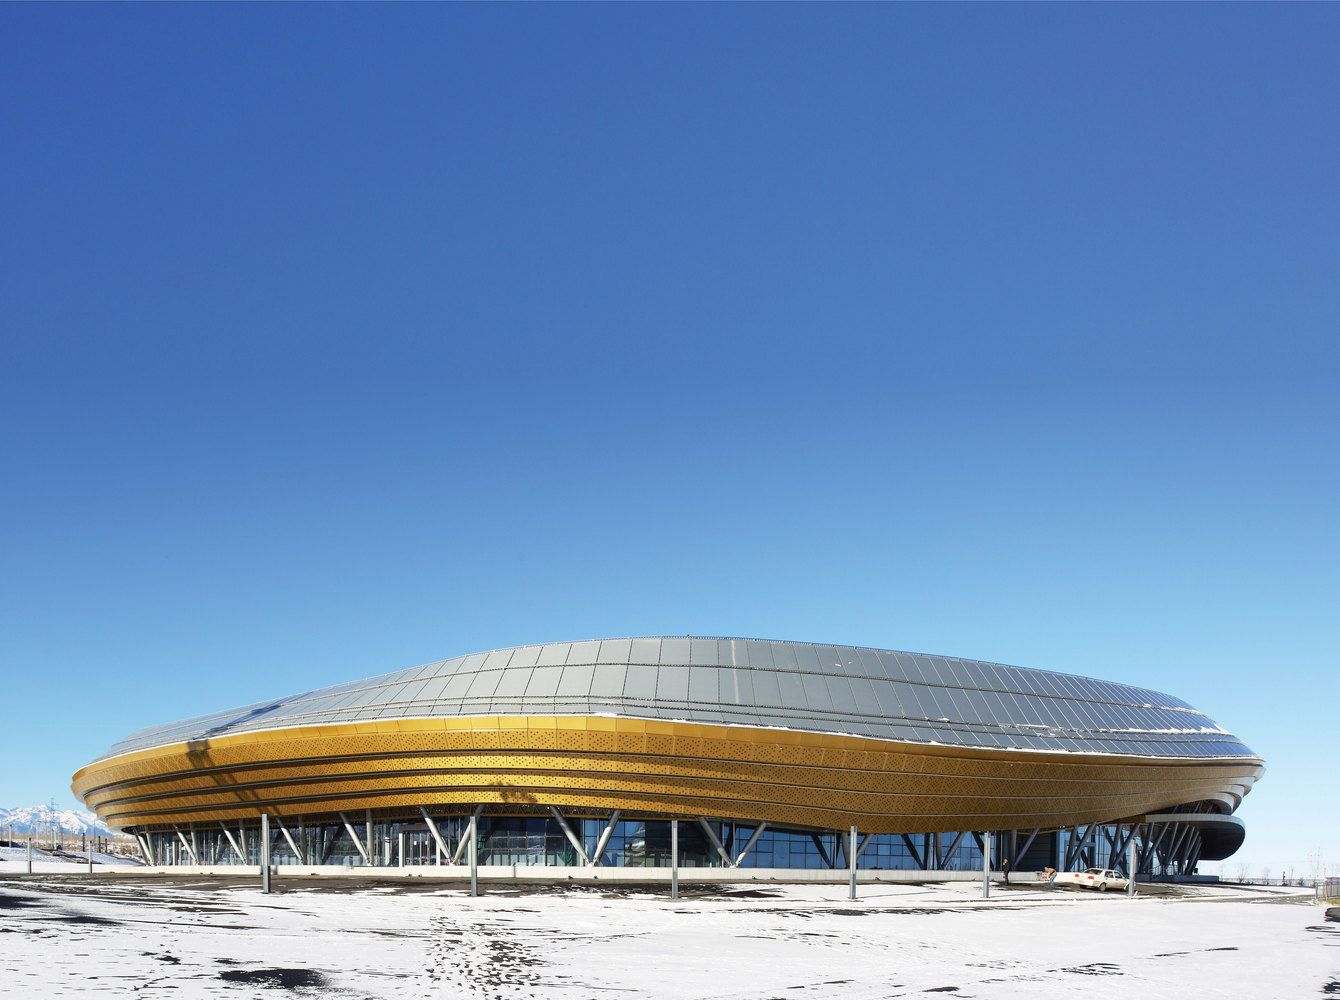 Gallery Of Ice Sports Center Of The 13th China National Winter Games Architectural Design And Research Institute Of Harbin Institute Of Technology 9 Ice Sports Winter Games Harbin